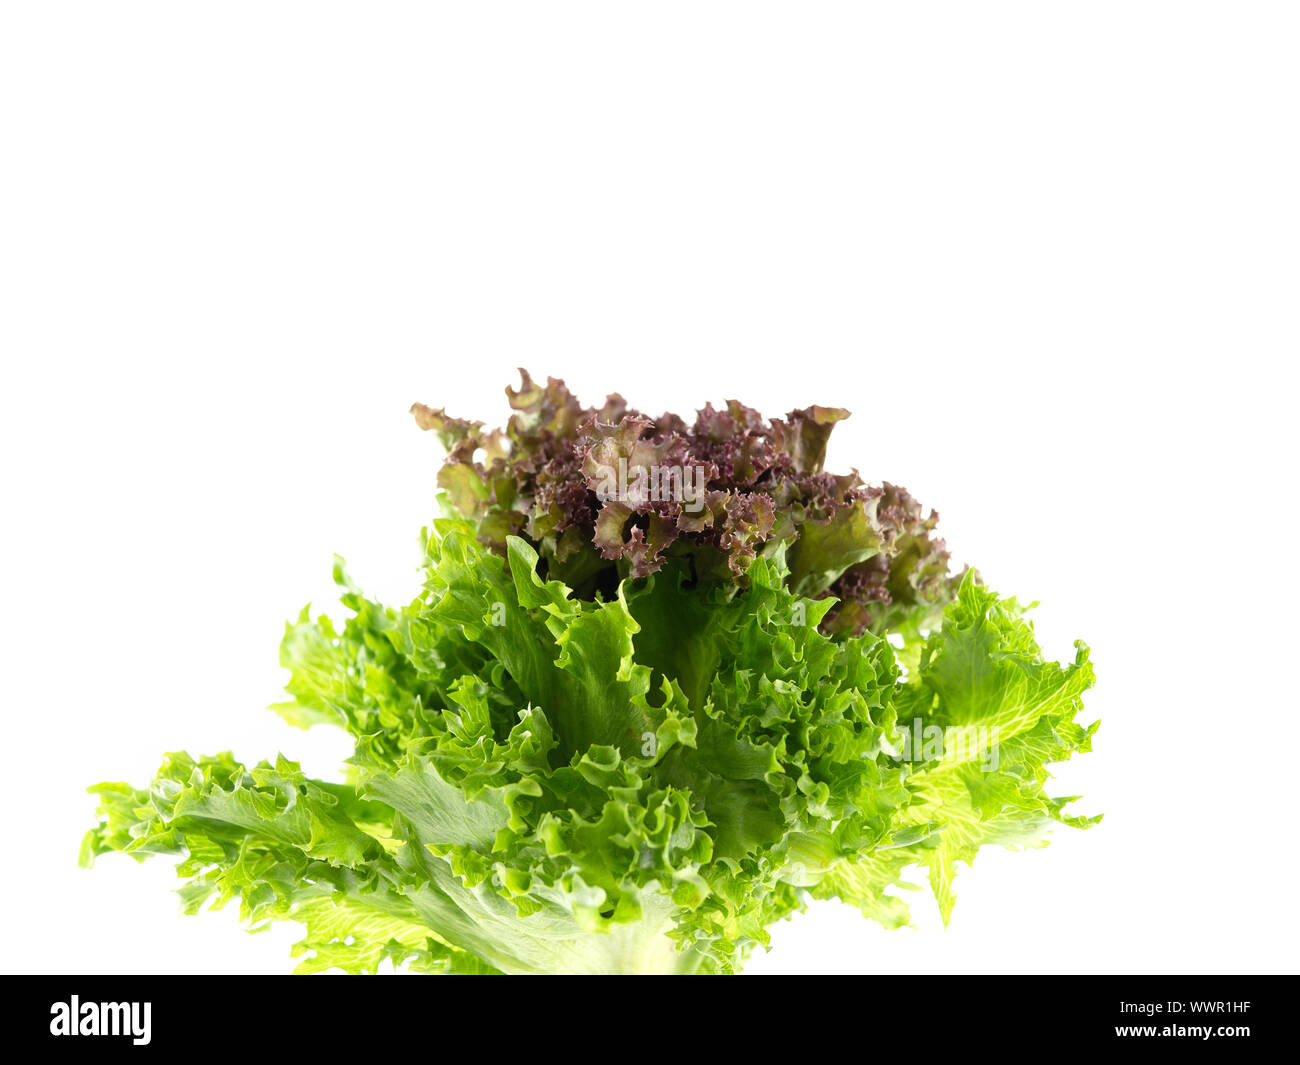 Salad leaf. Lettuce isolated on white background, Fresh and green lettuce, Salad background for inserting text Stock Photo